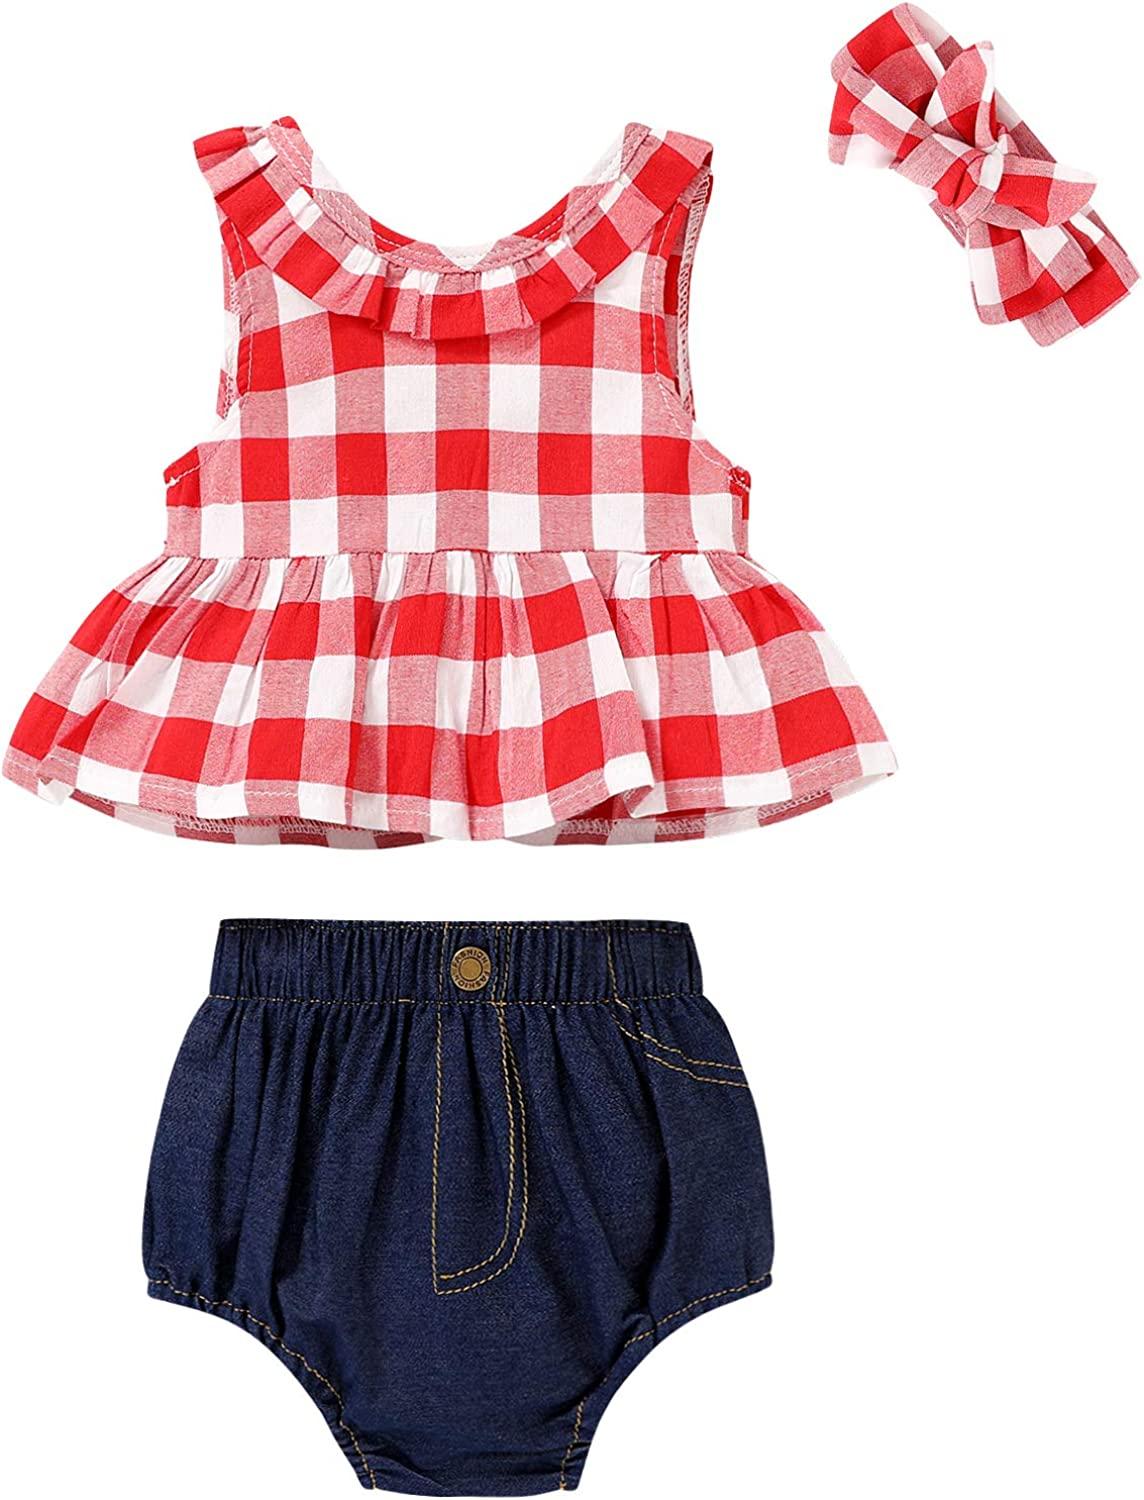 SWNONE Infant Toddler Girls Summer Clothes Outfit Plaid Ruffle Bowknot Shirts Top+Jeans Shorts +Headband Set